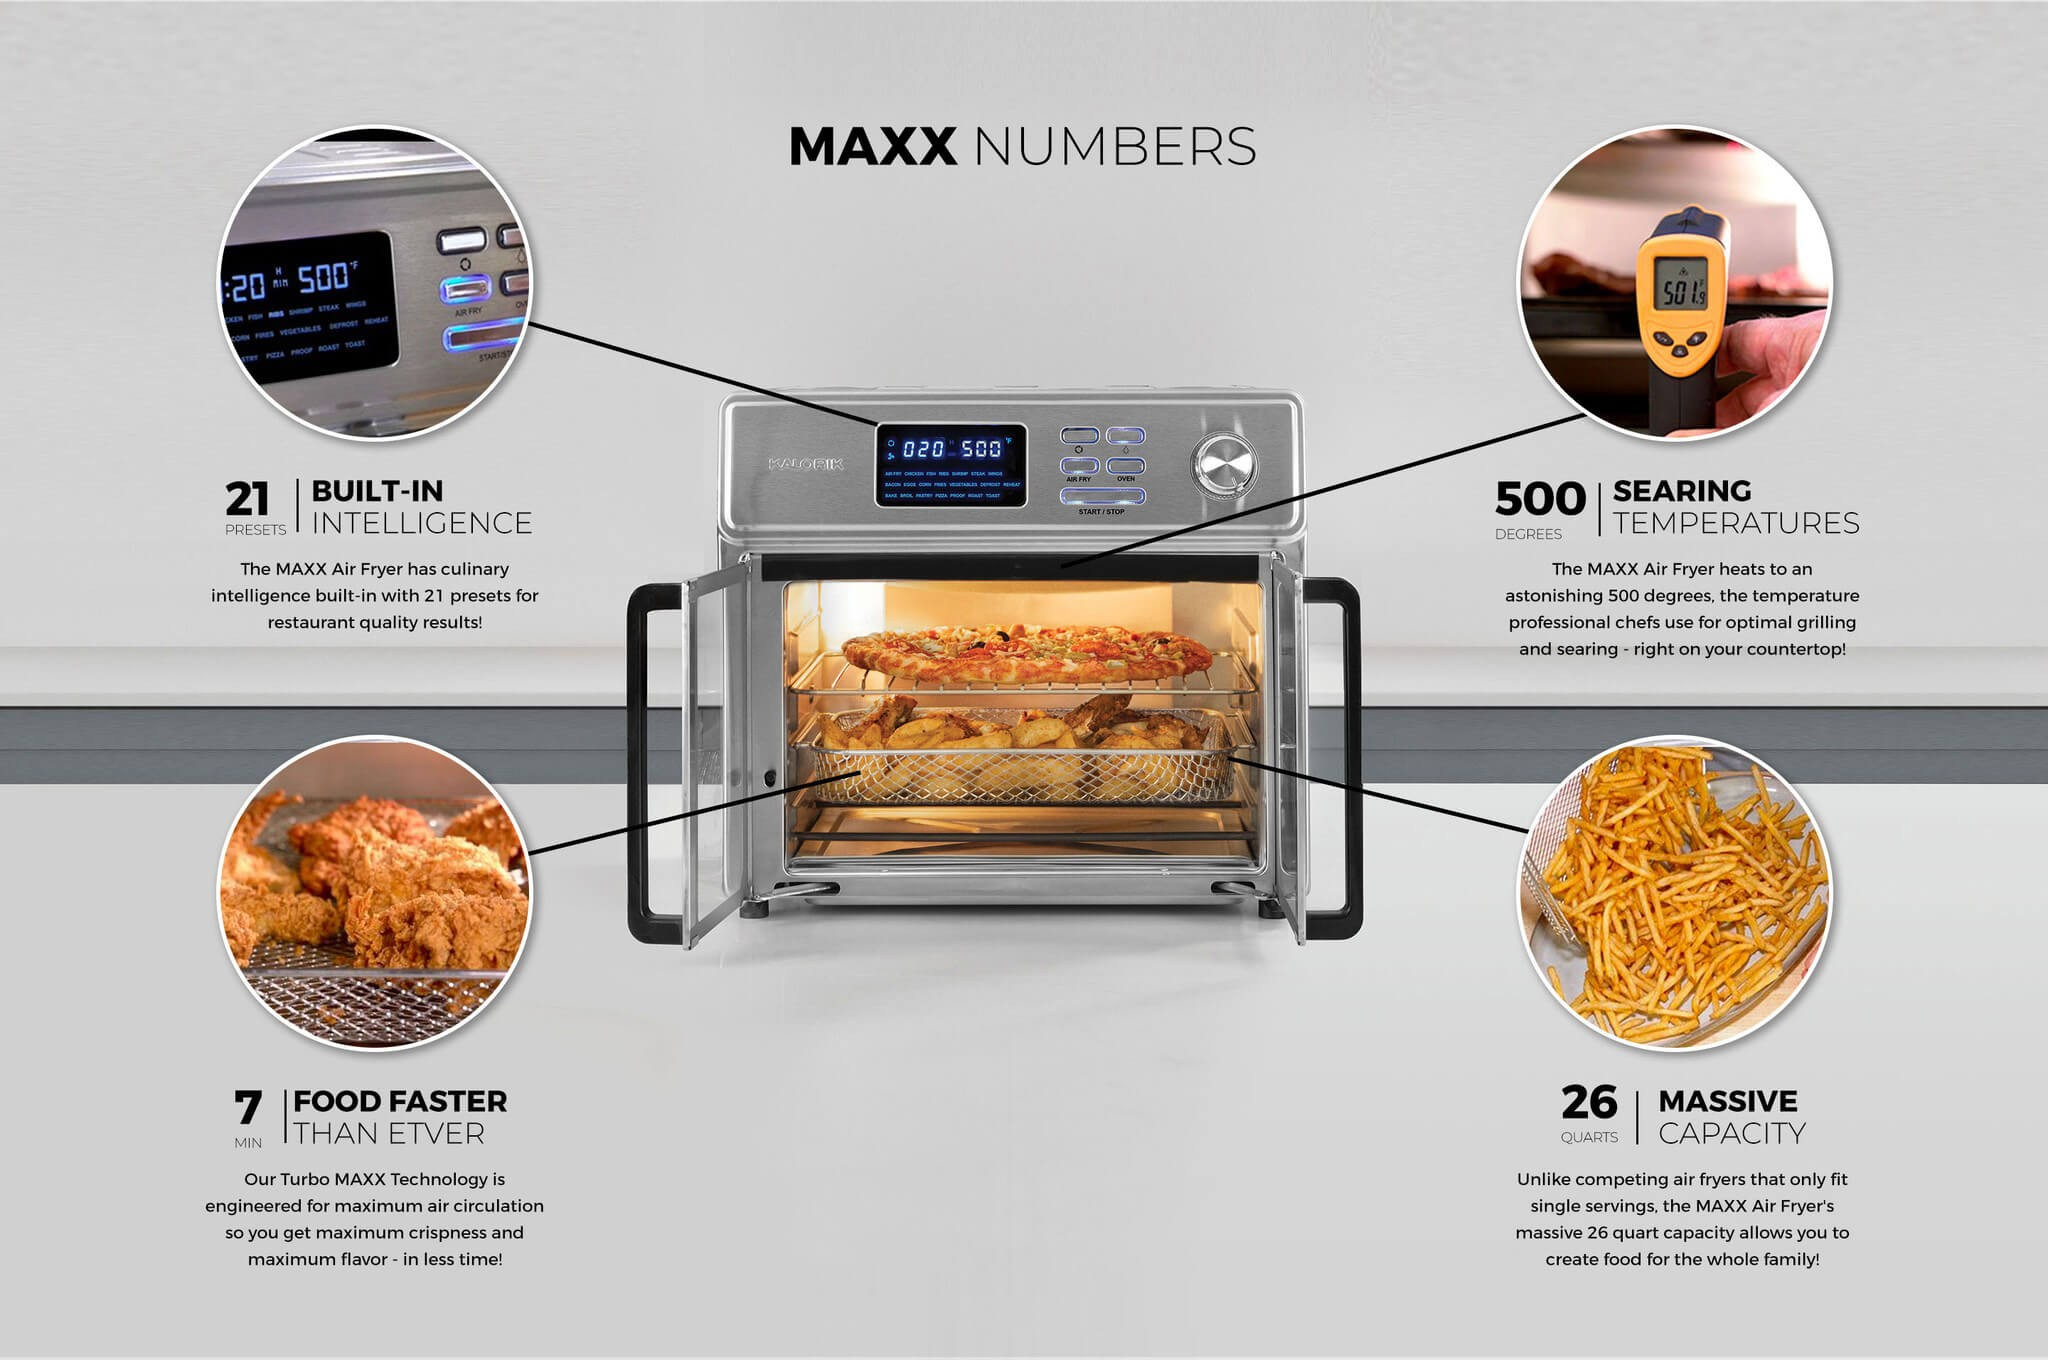 BUILT-IN INTELLIGENCE The MAXX, Air Fryer has culinary intelligence built-in with 21 presets for restaurant quality results, SEARING TEMPERATURES, The MAXX Air Fryer heats to an astonishing 500 degrees, the temperature professional chefs use for optimal grilling and searing - right on your countertop, FOOD FASTER THAN EVER, Our Turbo MAXX Technology is engineered for maximum air circulation so you get maximum crispness and maximum flavor - in less time, MASSIVE CAPACITY, Unlike competing air fryers that only fit single servings, the MAXX Air Fryer's massive 26 quart capacity allows you to create food for the whole family!